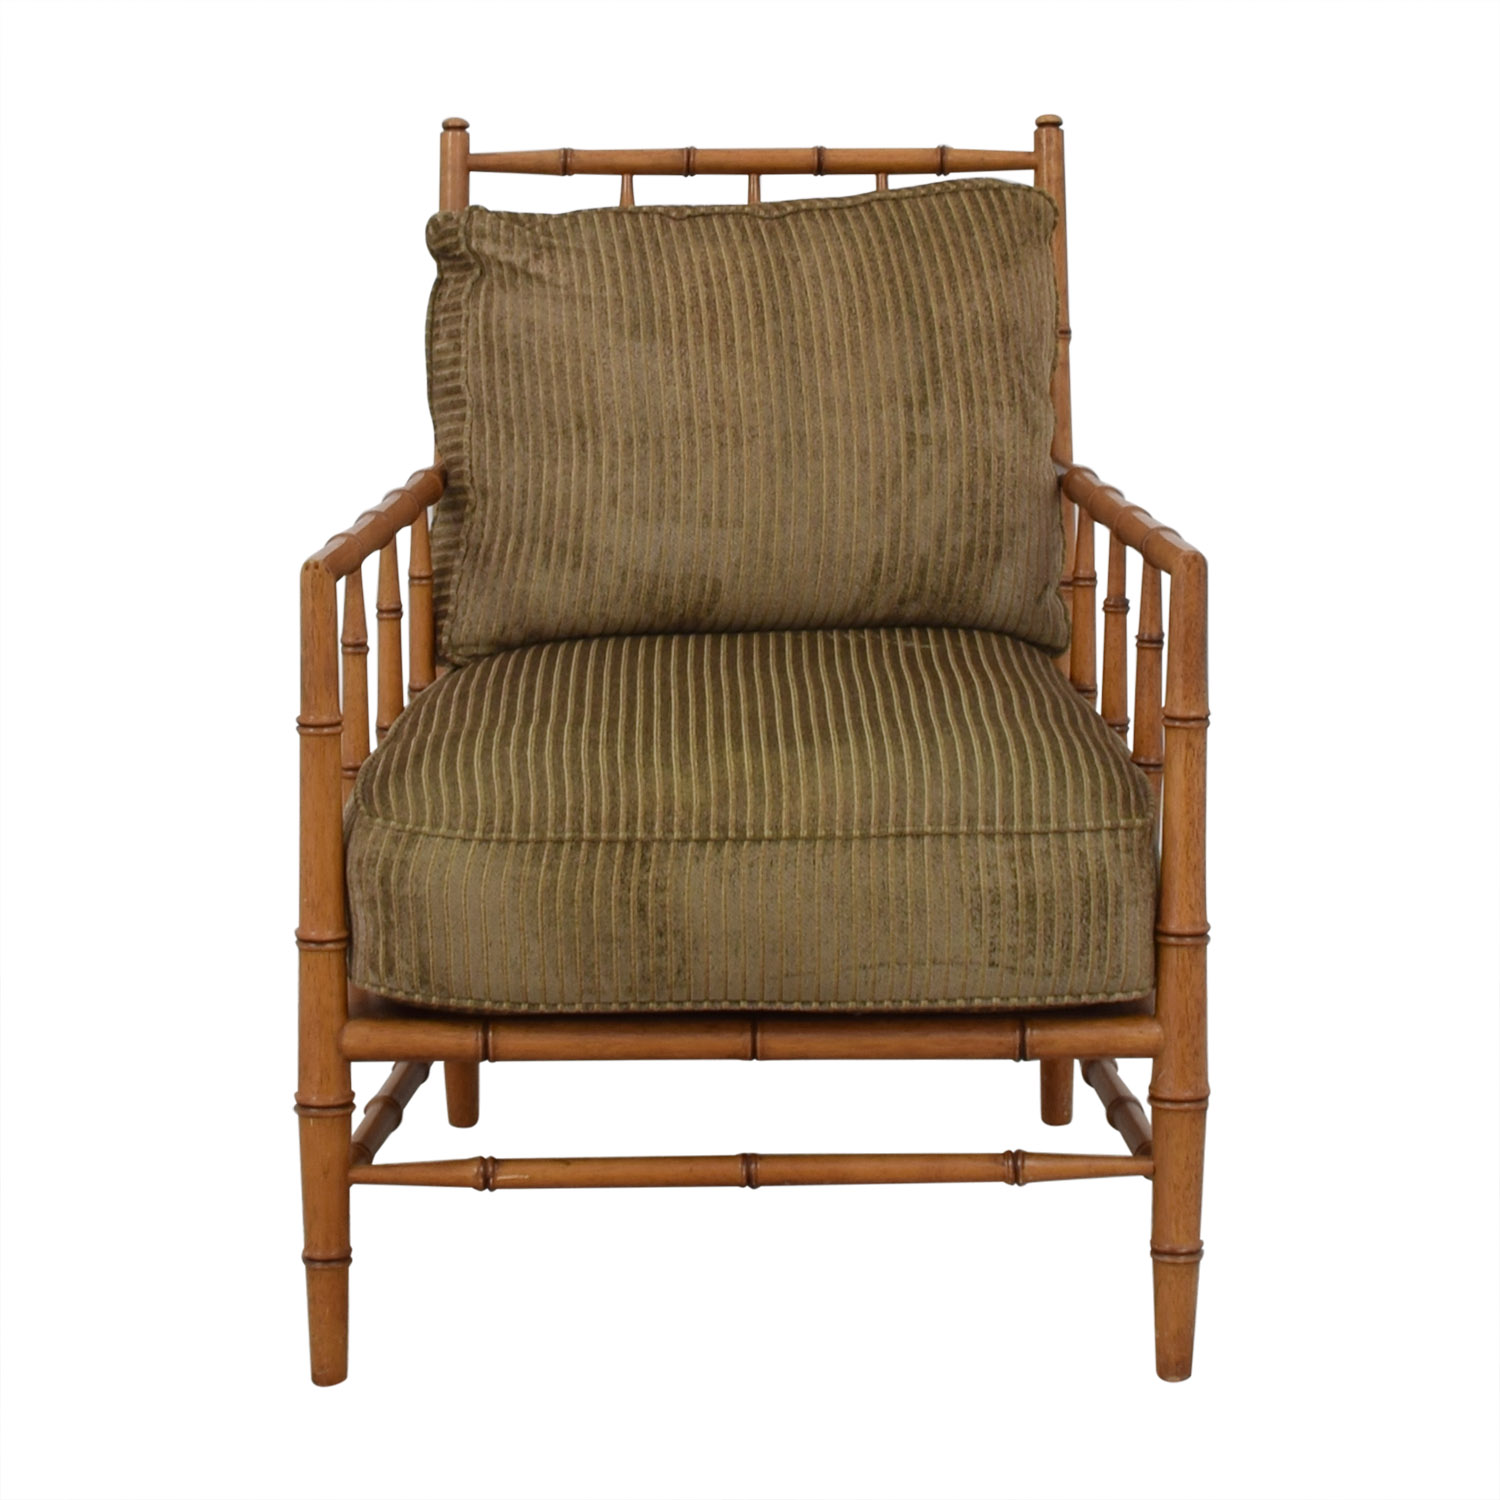 Bernhardt Bernhardt for Martha Stewart Lounge Chair nj